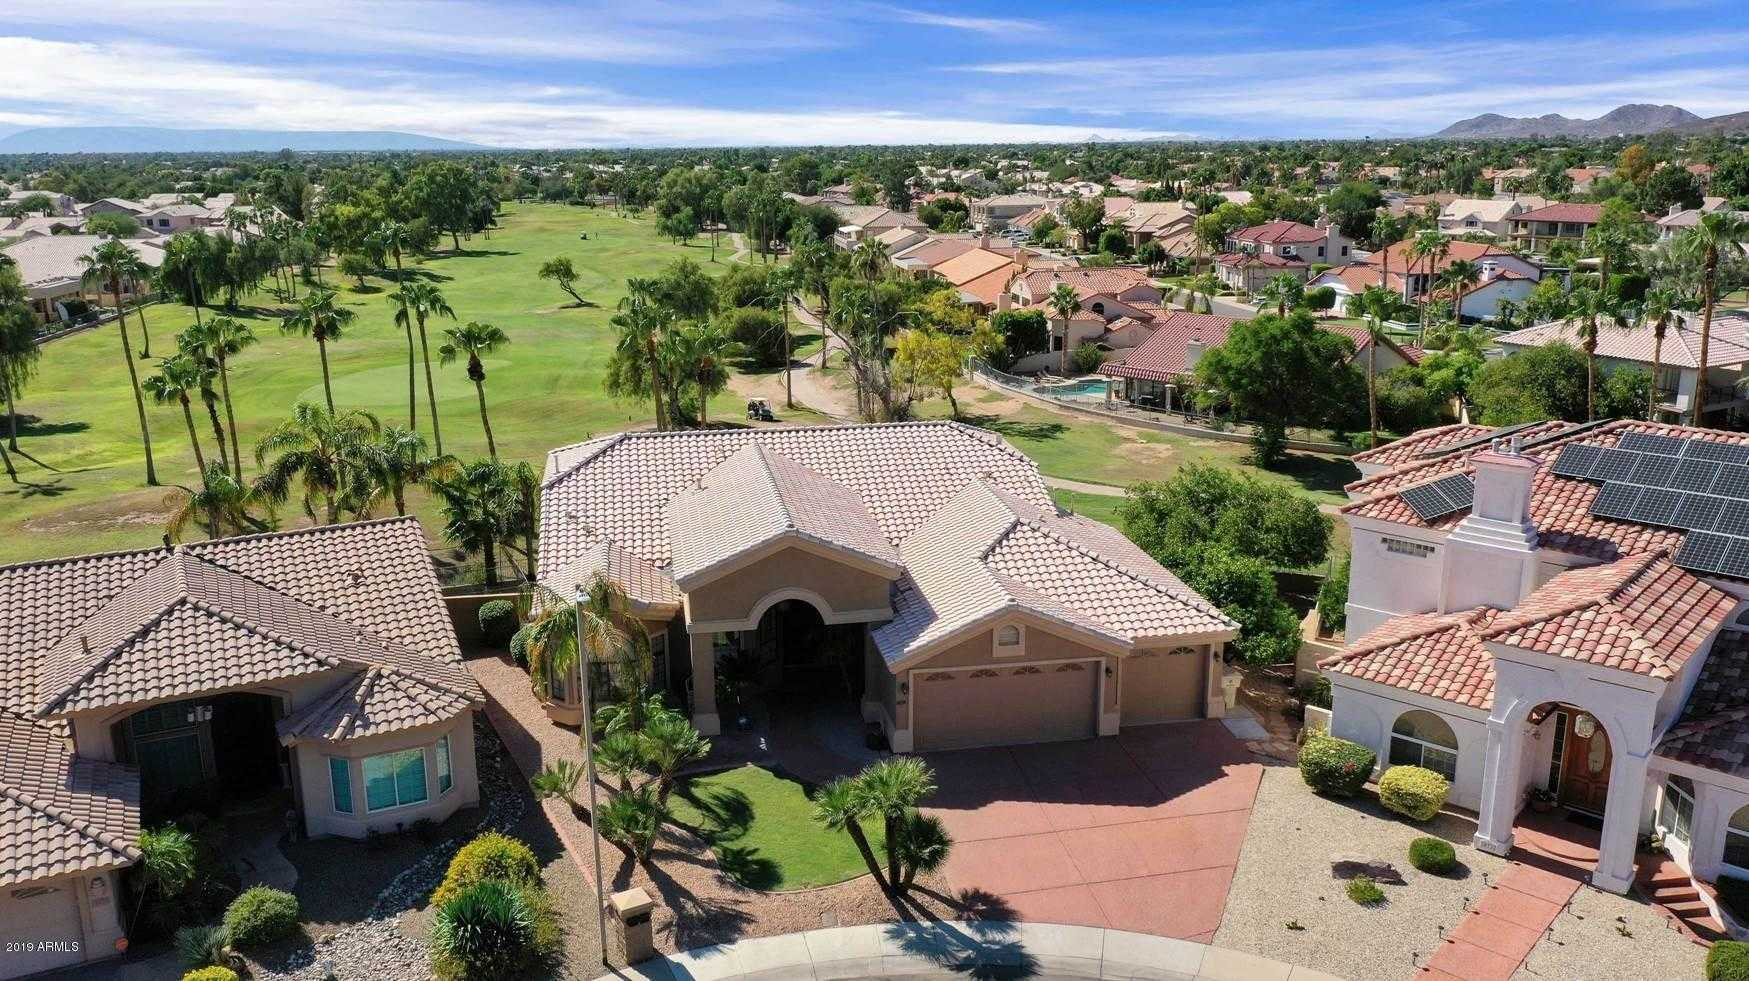 $849,000 - 6Br/4Ba - Home for Sale in Arrowhead Lakes 3 Lot 239-333 Tr A-b, Glendale